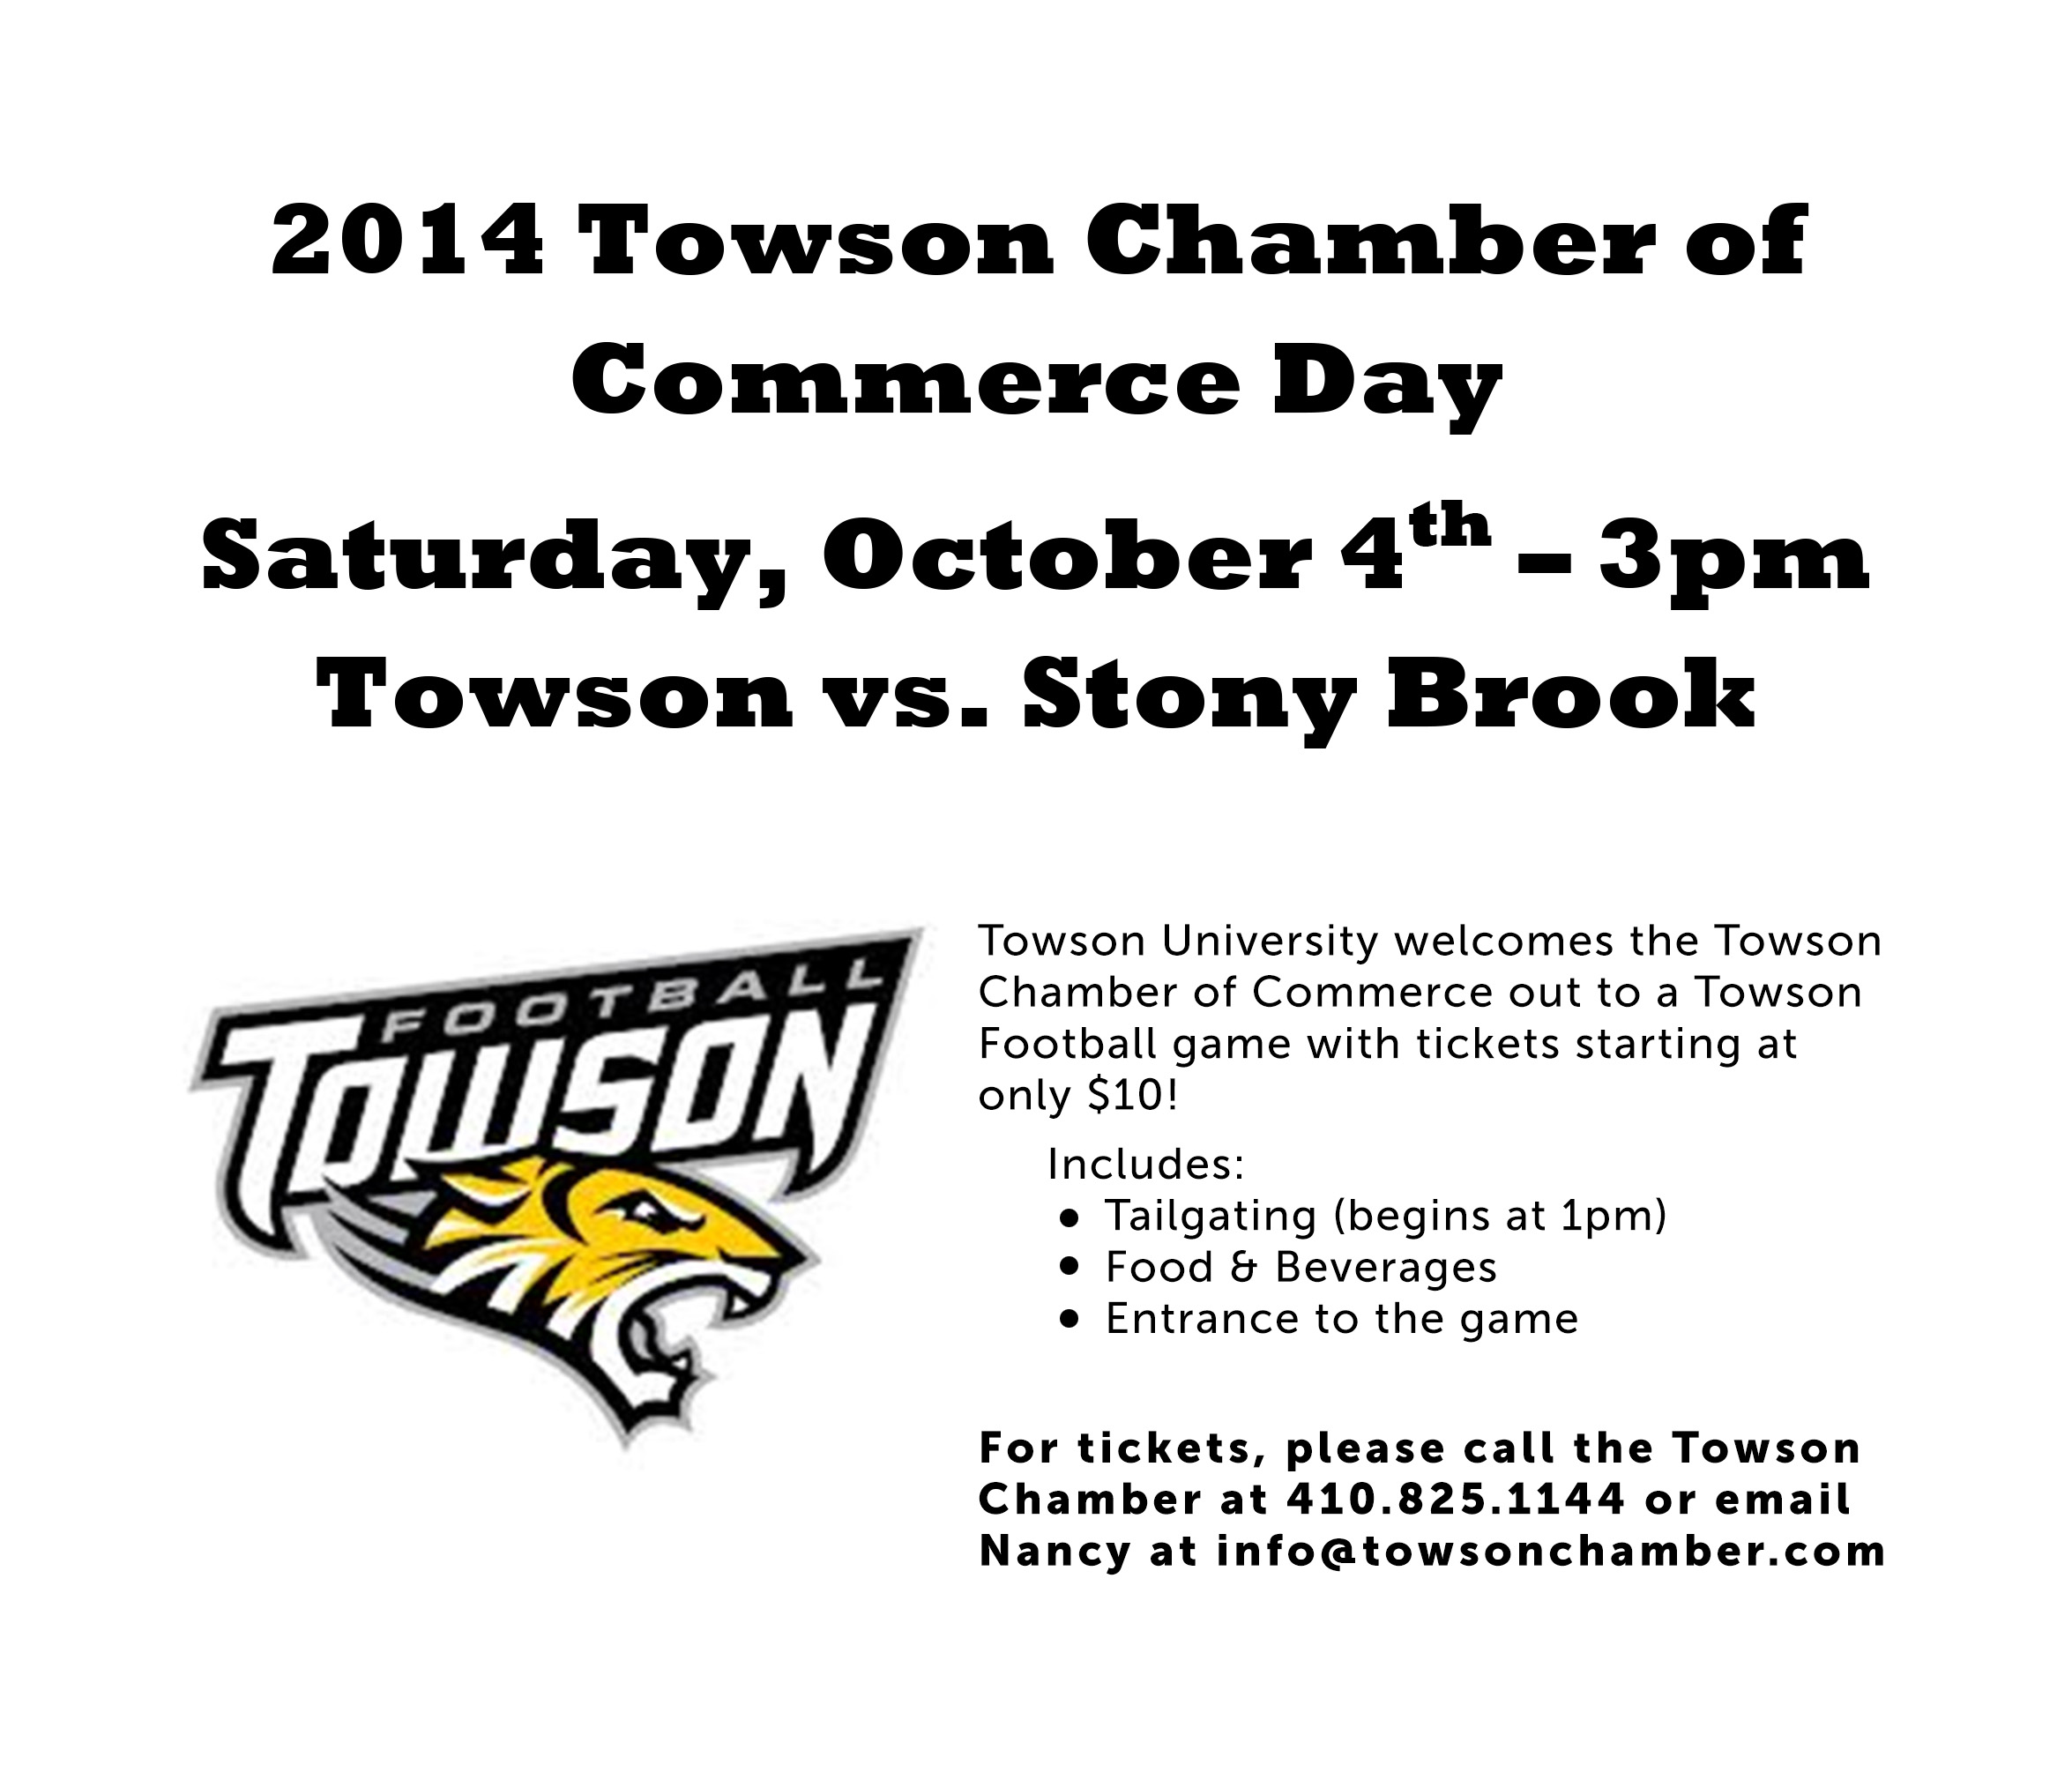 Microsoft Word - 2014 Towson Chamber of Commerce.docx